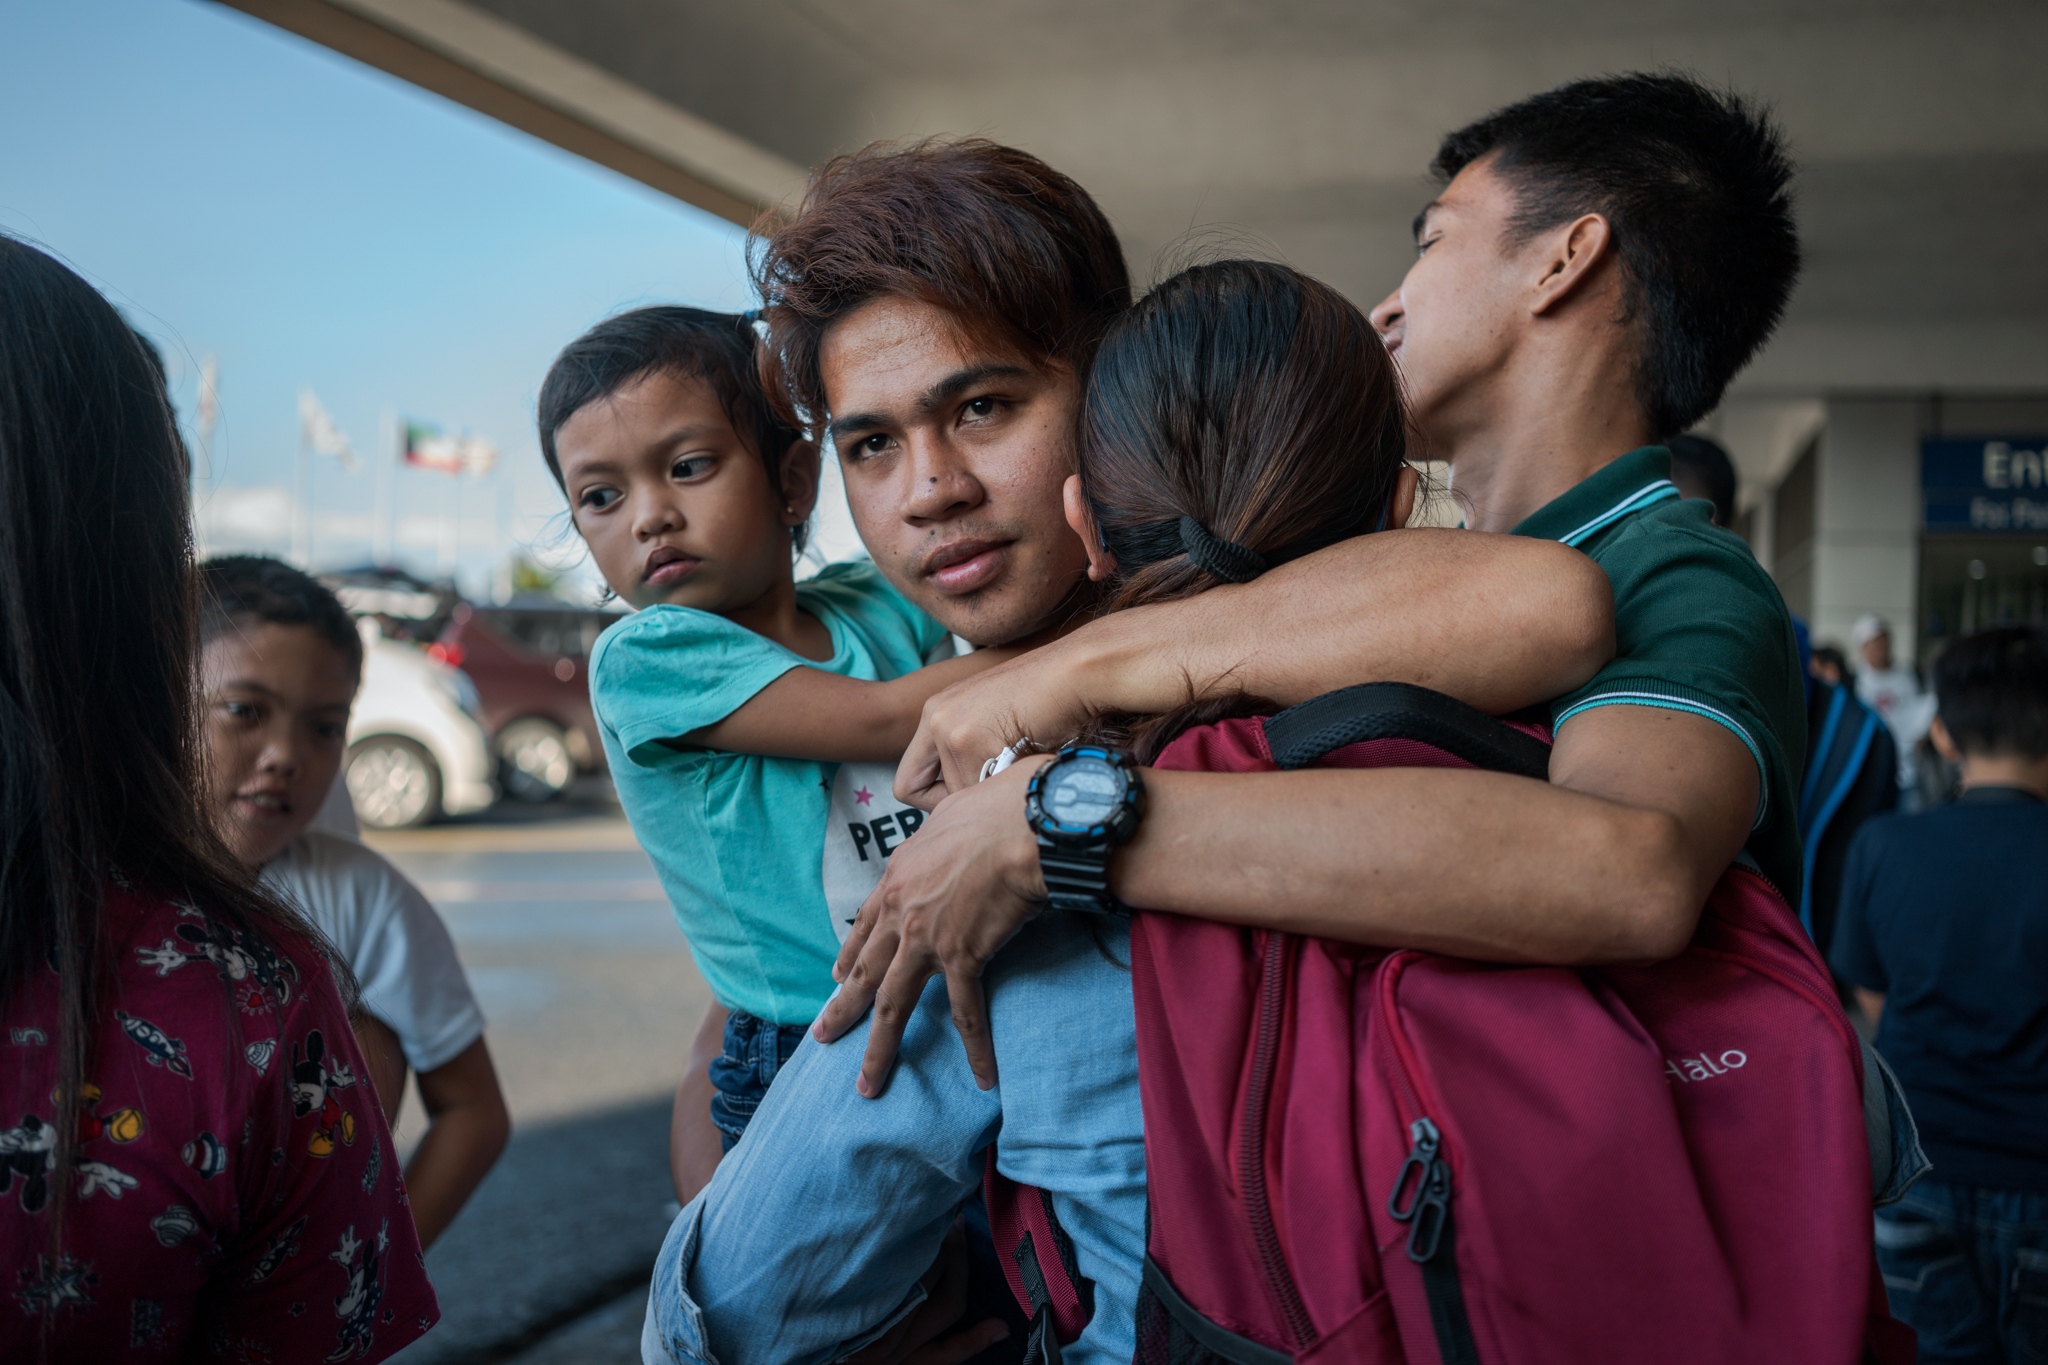 Most Filipino workersÕ journeys begin at ManilaÕs airport, with tearful goodbyes, uncertainty, and hope.